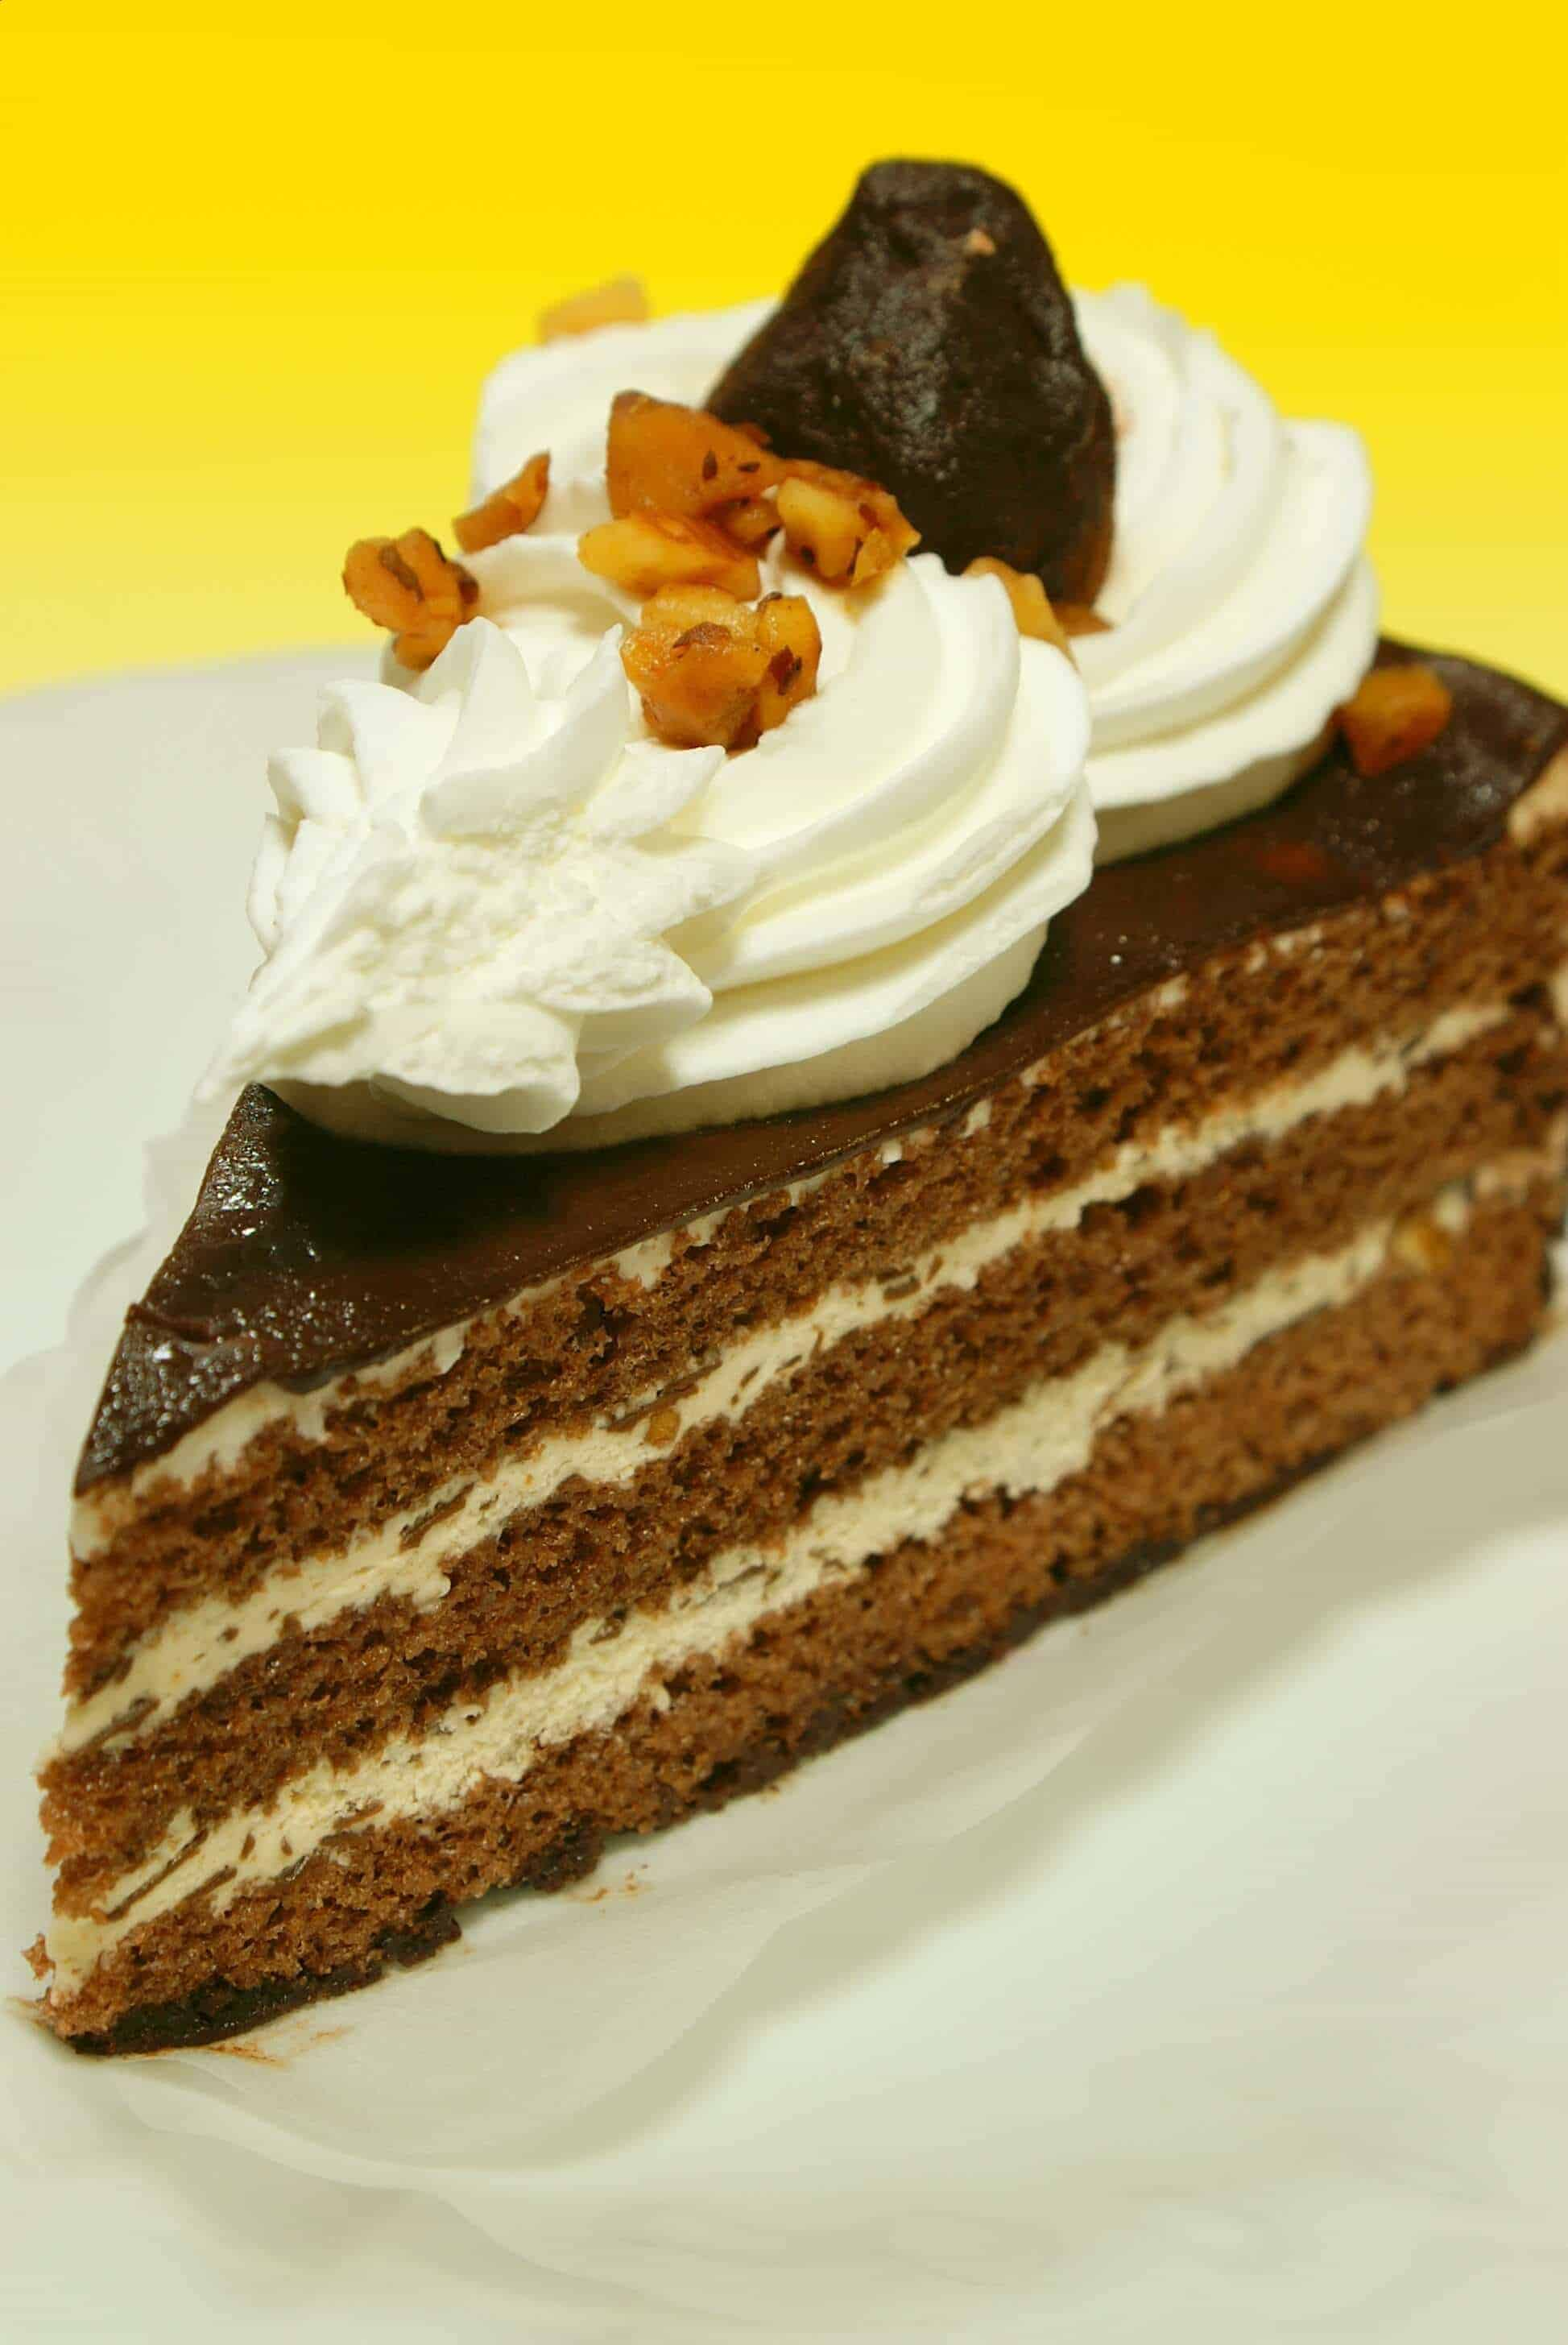 A decadent piece of chocolate cake with 3 layers of creme filling, a chocolate ganache shell and hand-whipped whipped cream